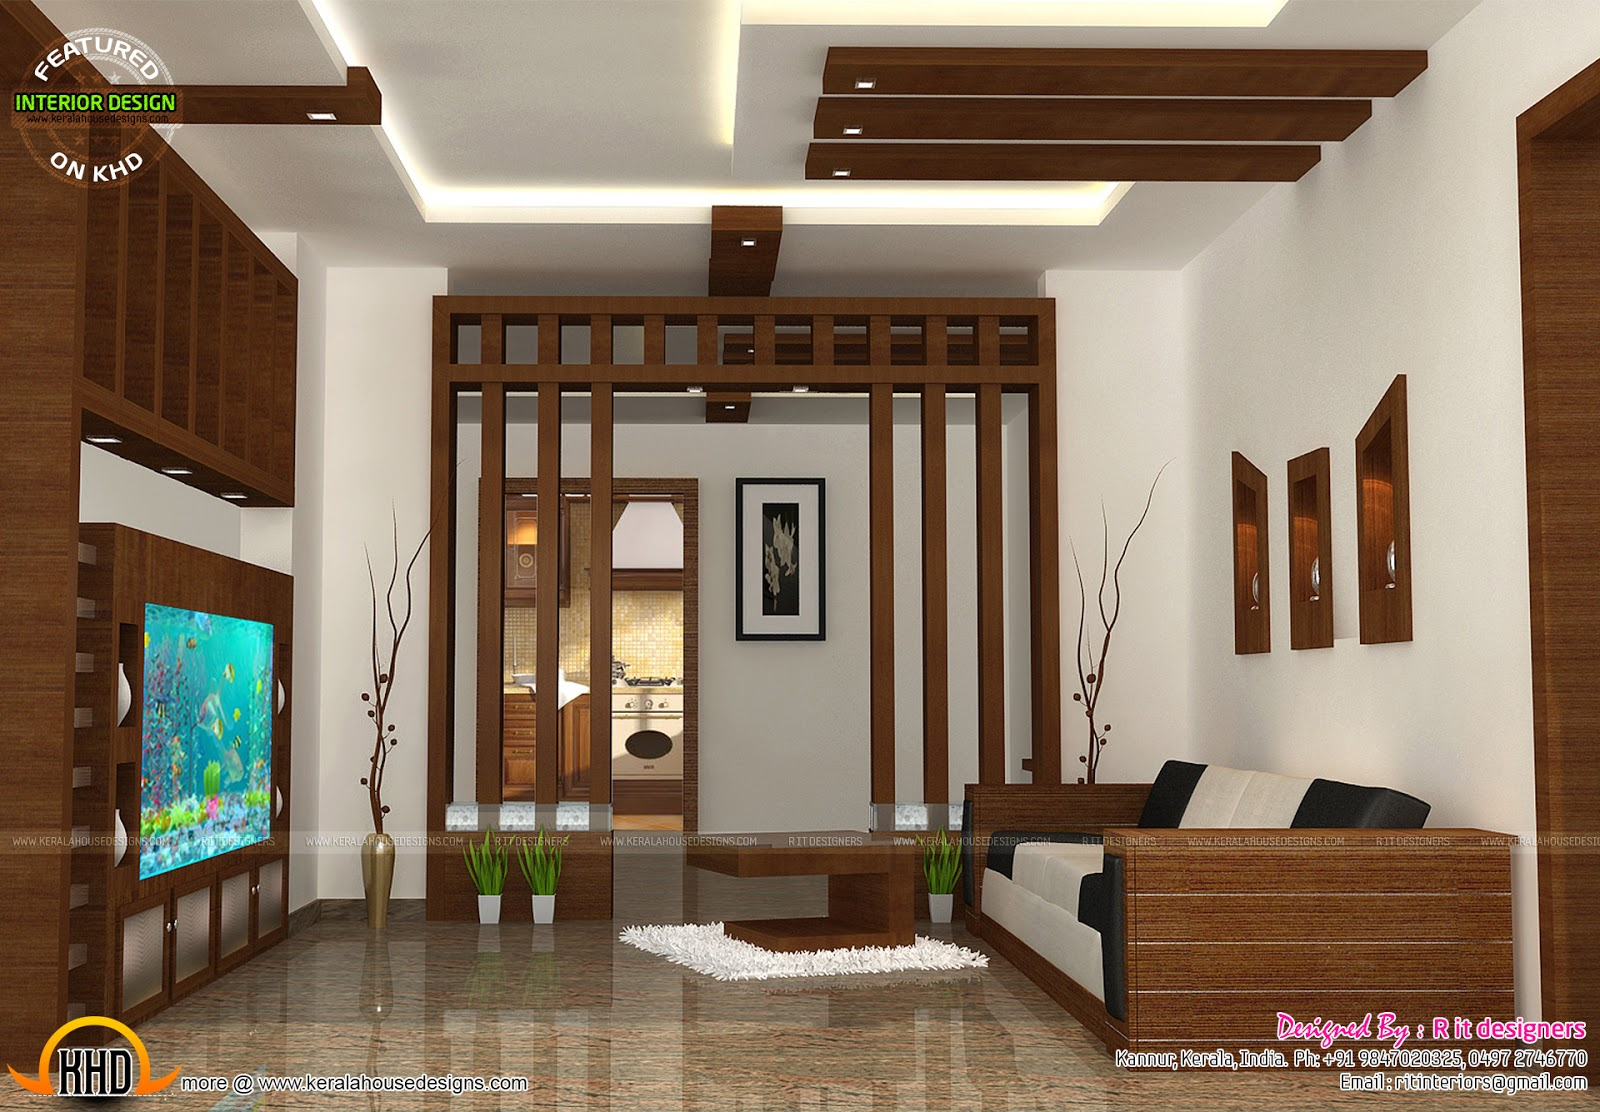 Wooden finish interiors kerala home design and floor plans for Indian living room interior design photo gallery